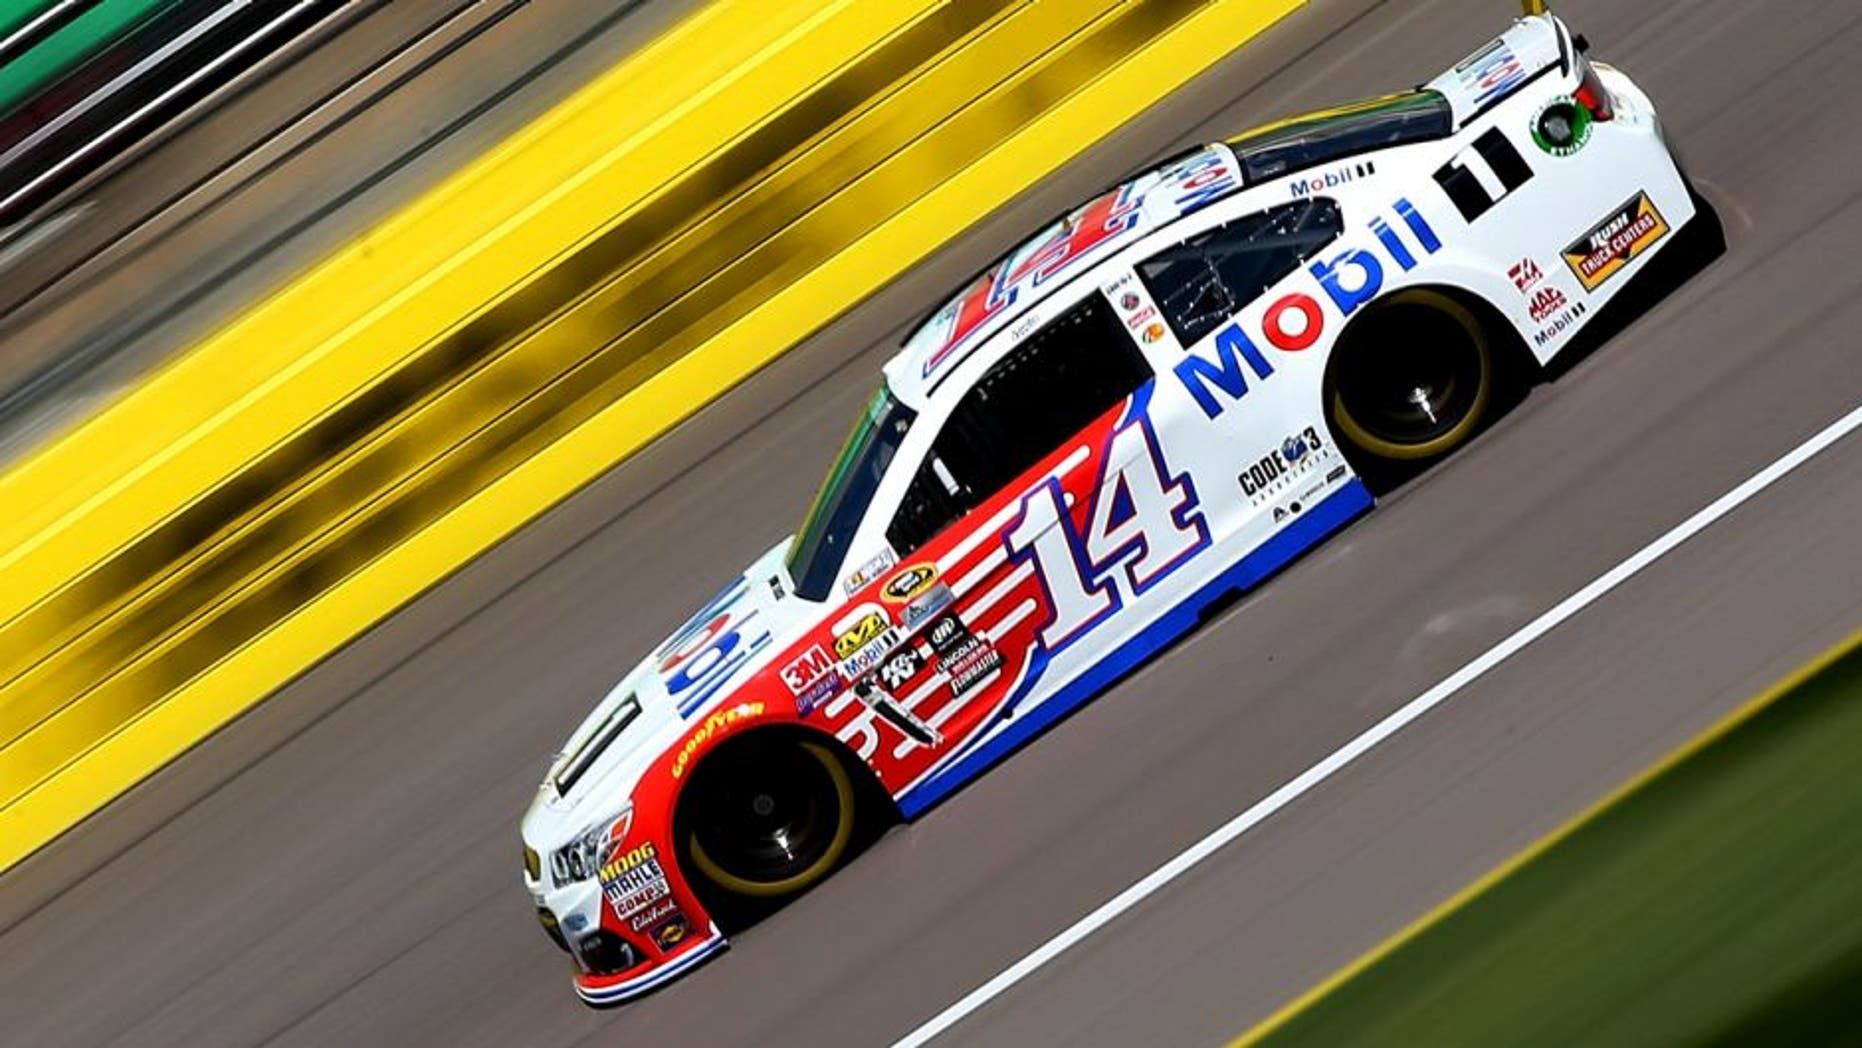 KANSAS CITY, KS - MAY 06: Tony Stewart, driver of the #14 Mobil 1 Chevrolet, drives during practice for the NASCAR Sprint Cup Series Go Bowling 400 at Kansas Speedway on May 6, 2016 in Kansas City, Kansas. (Photo by Sean Gardner/NASCAR via Getty Images)